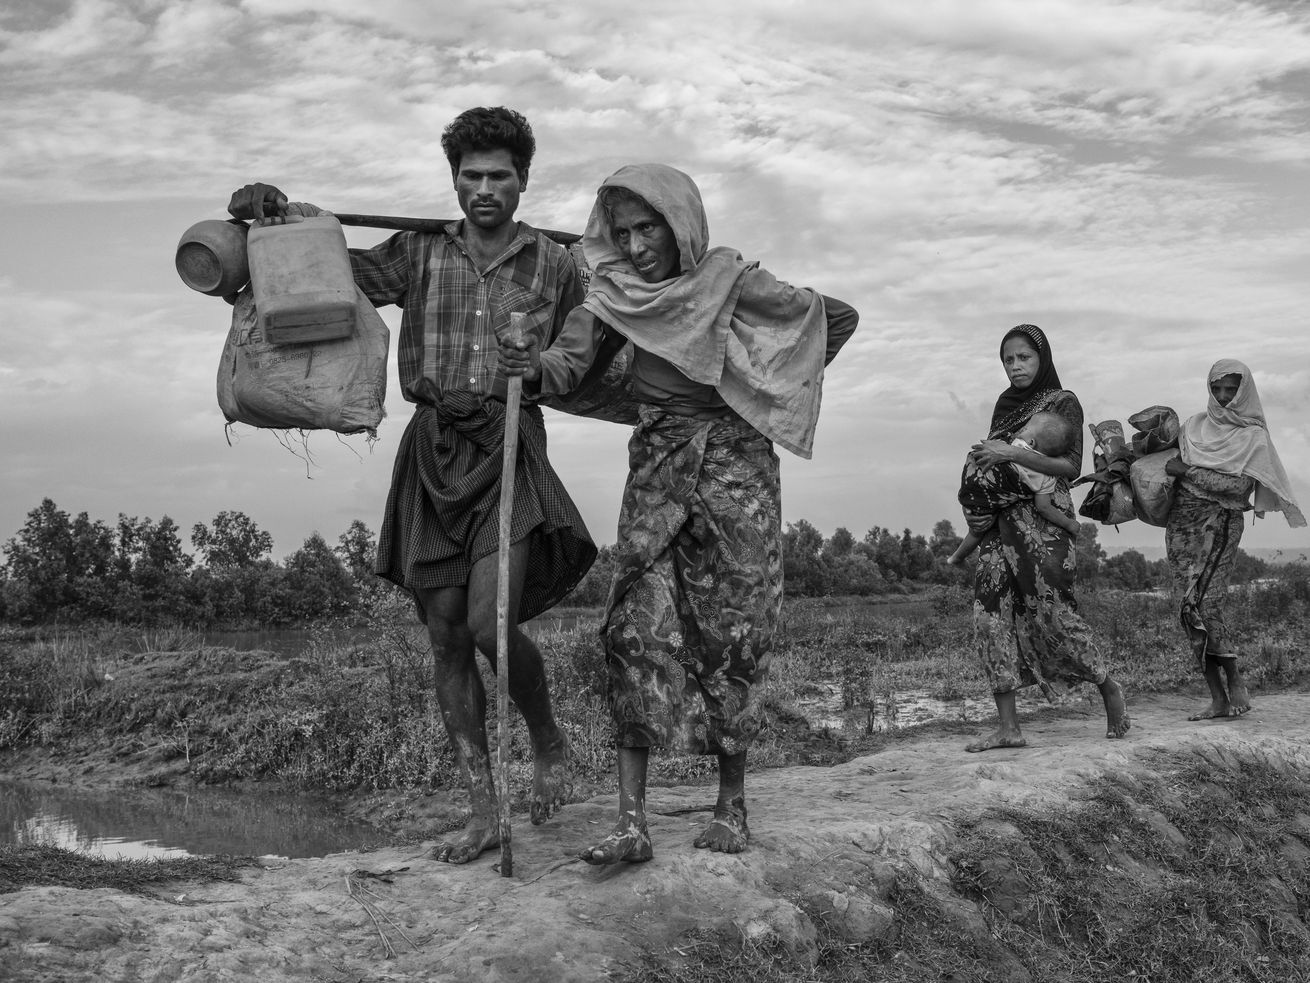 Rohingya refugees after crossing the border from Myanmar into Bangladesh in November 2017.